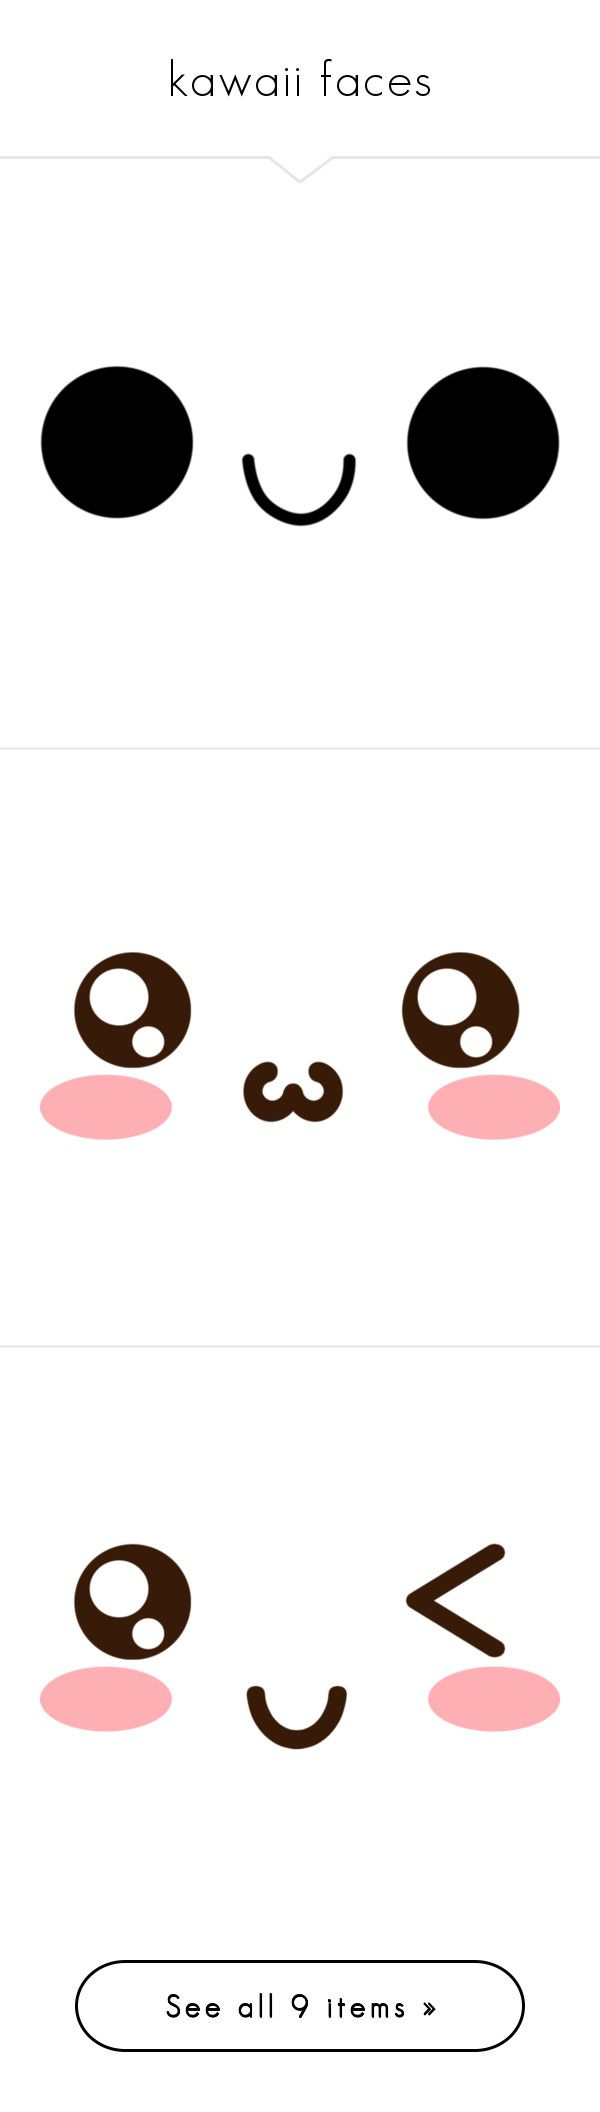 """""""kawaii faces"""" by pokeasaurousrex ❤ liked on Polyvore featuring doodle, filler, scribble, fillers, fillers - pink, kawaii, artsy, drawings, effect and art"""